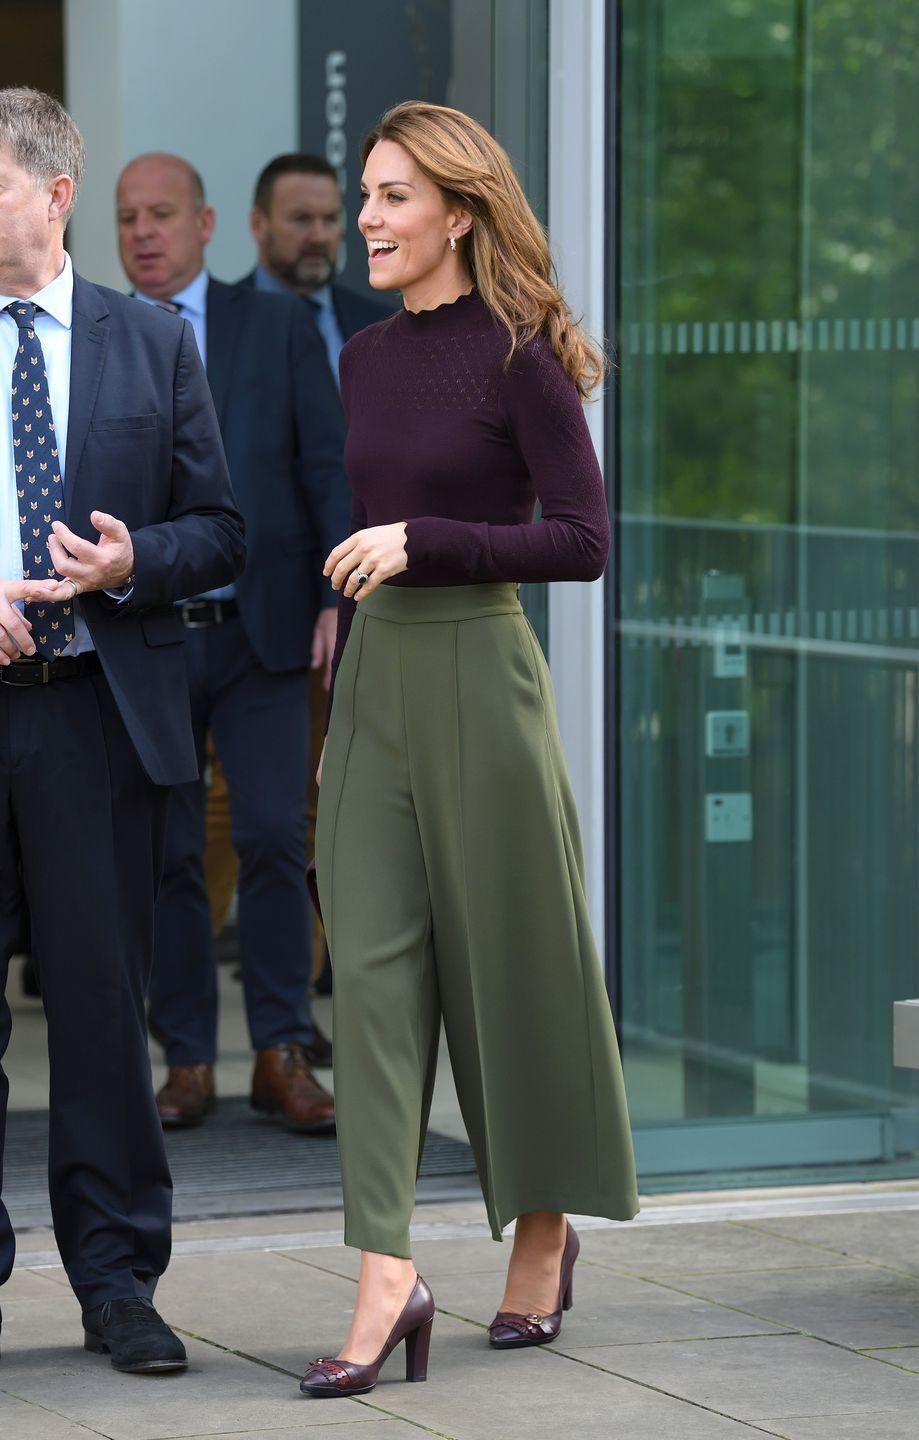 """<p>For a <a href=""""https://www.townandcountrymag.com/style/fashion-trends/a29399497/kate-middleton-chanel-bag-jigsaw-trousers-natural-history-museum-photos/"""" rel=""""nofollow noopener"""" target=""""_blank"""" data-ylk=""""slk:surprise visit to the National History Museum"""" class=""""link rapid-noclick-resp"""">surprise visit to the National History Museum</a>, Middleton wore a burgundy sweater with a scalloped neckline and sleeves, and paired it with olive wide-leg trousers. She added burgundy pumps, gold Asprey hoops, and a Chanel handbag for the quintessential early fall outfit.</p>"""